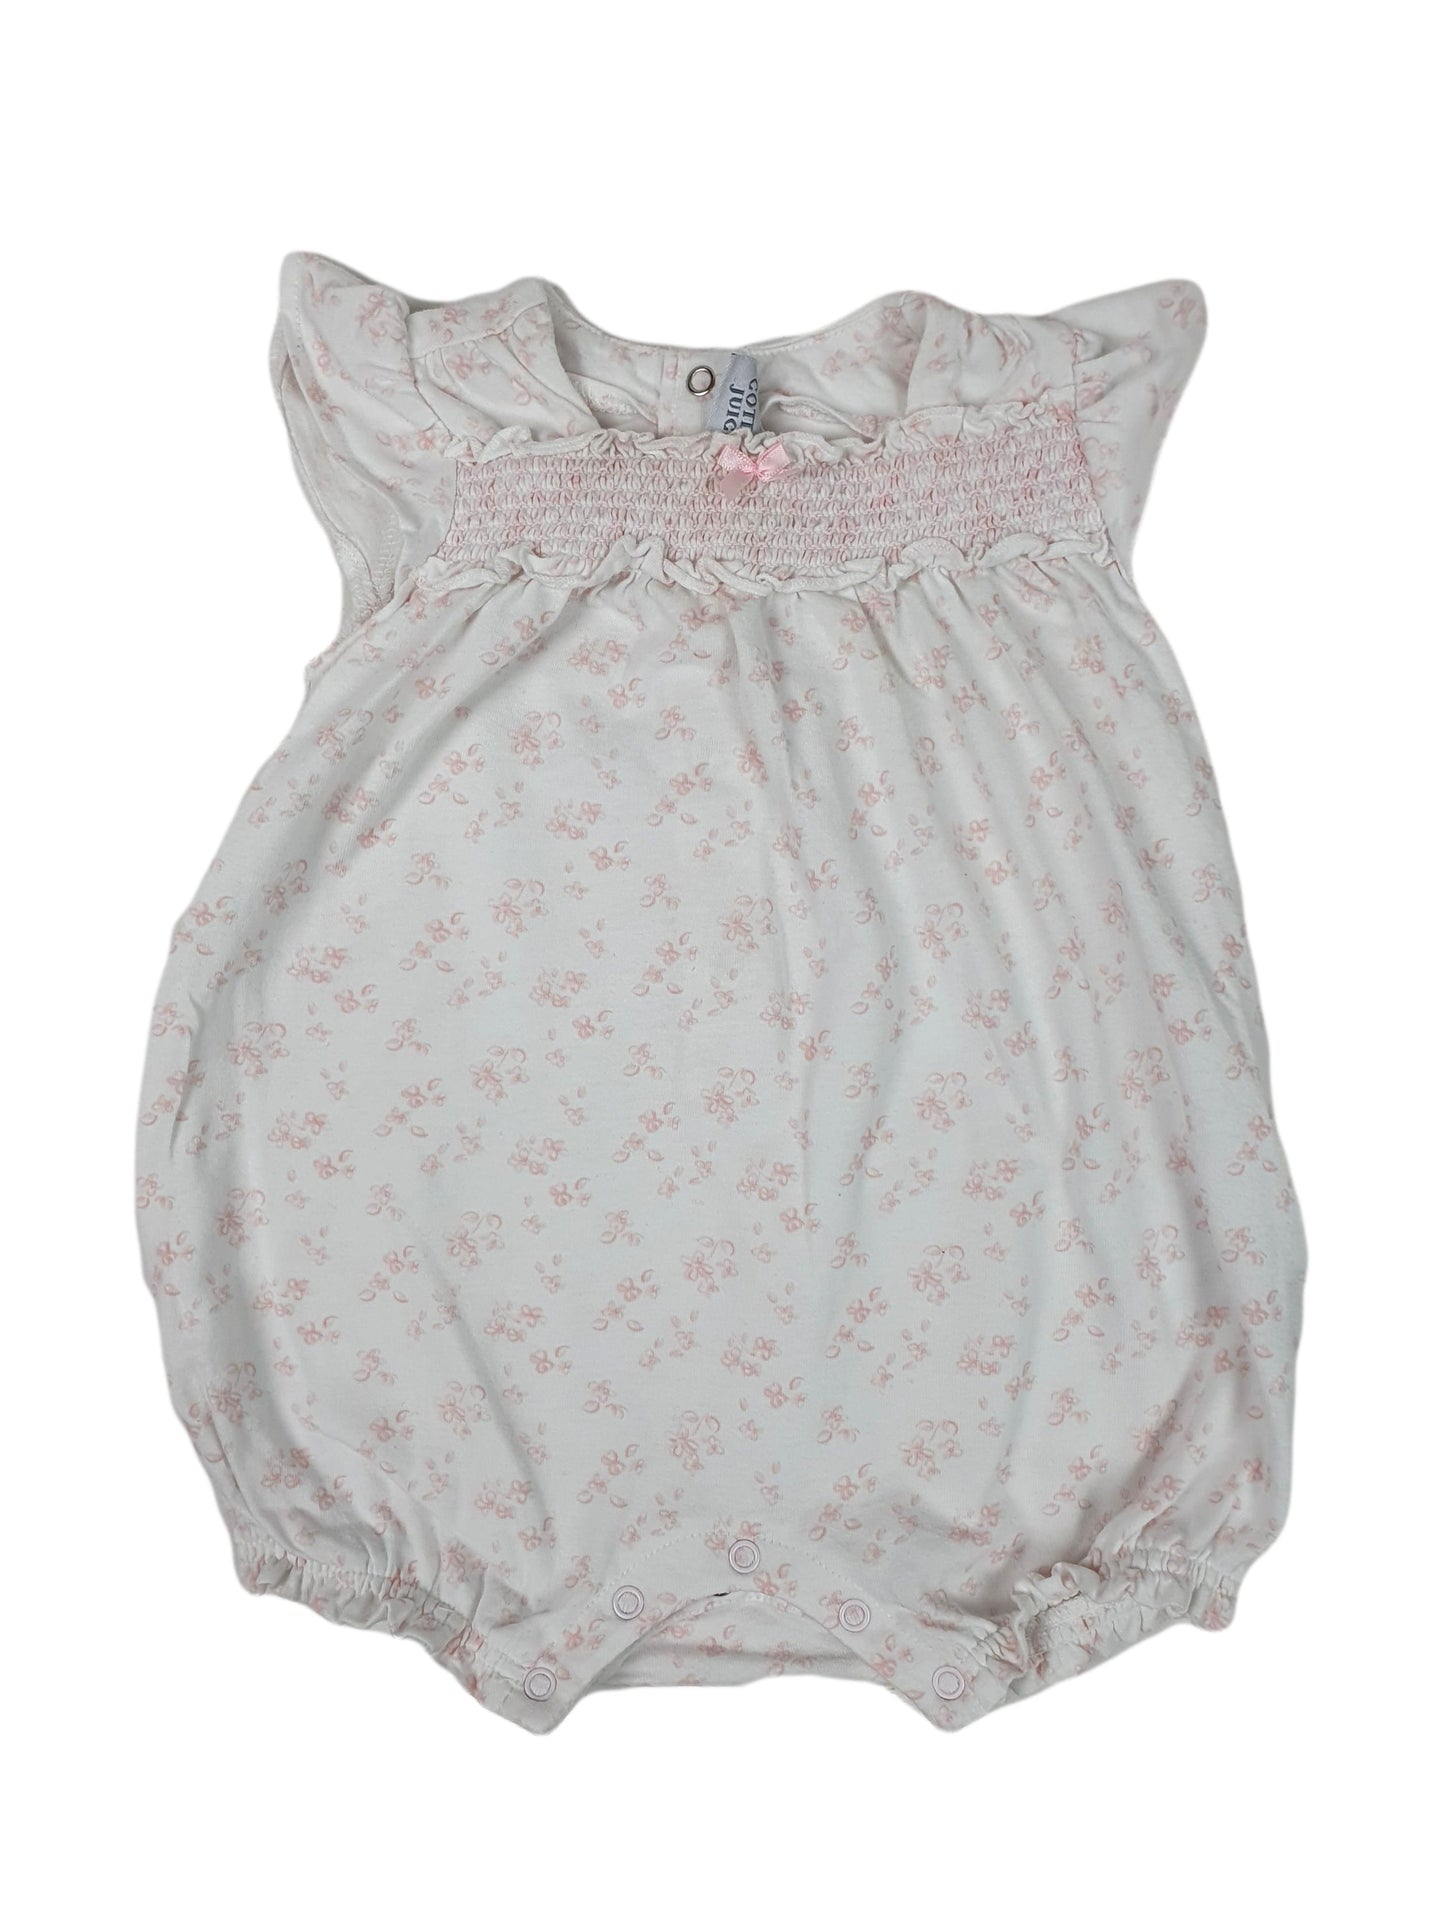 COTTON JUICE girl romper 6-12m